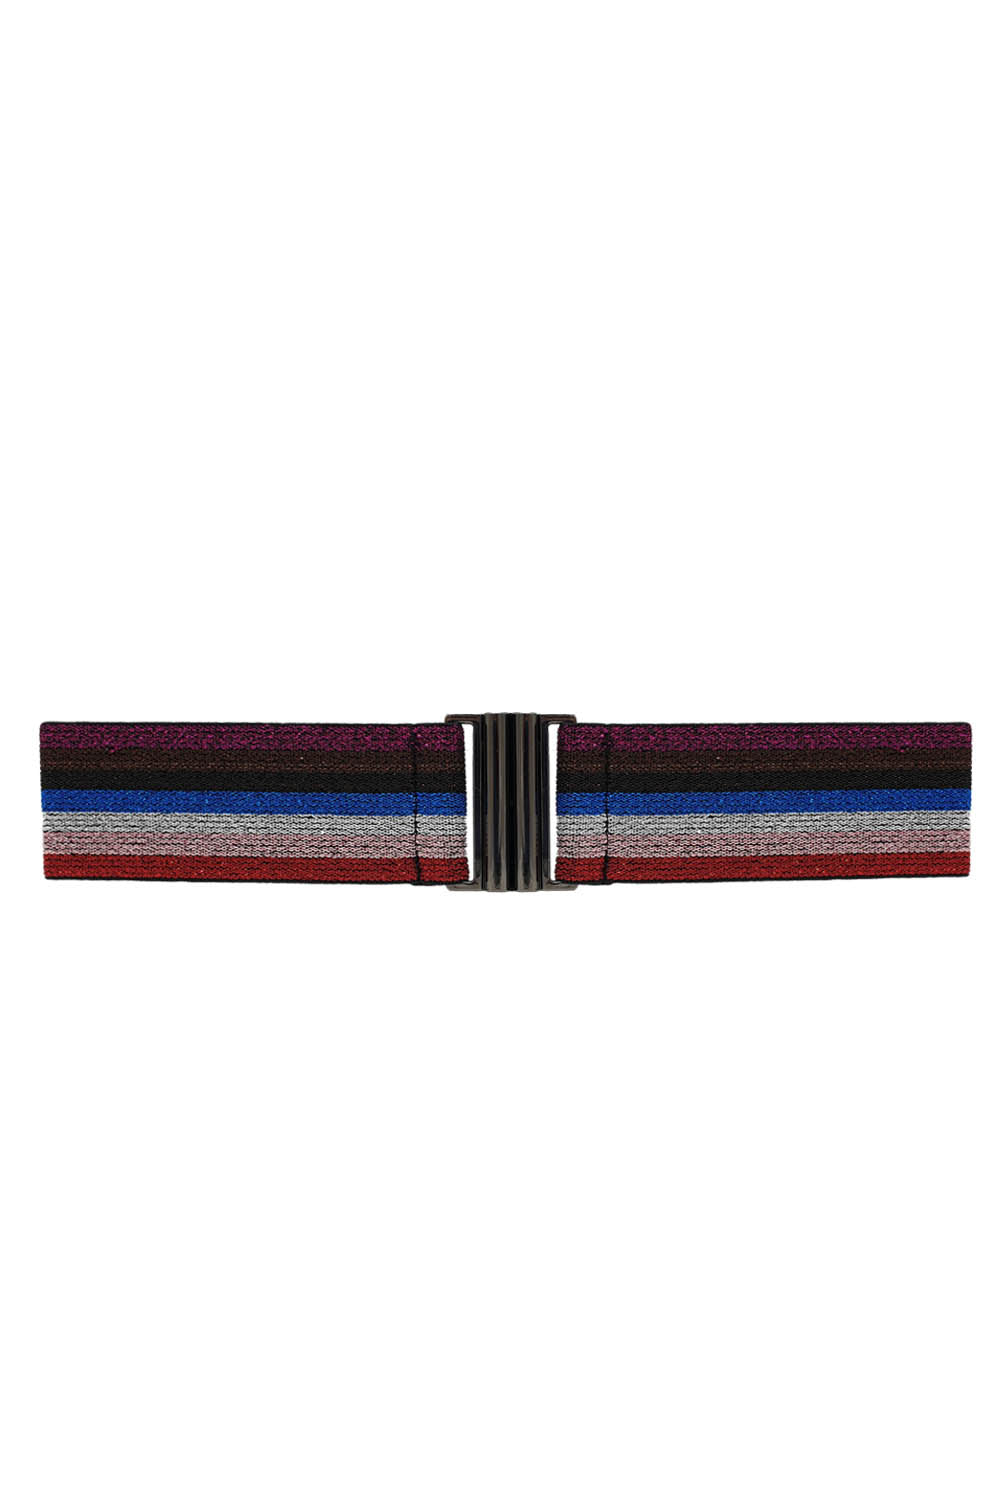 Lurex Elastic Belt - Rainbow